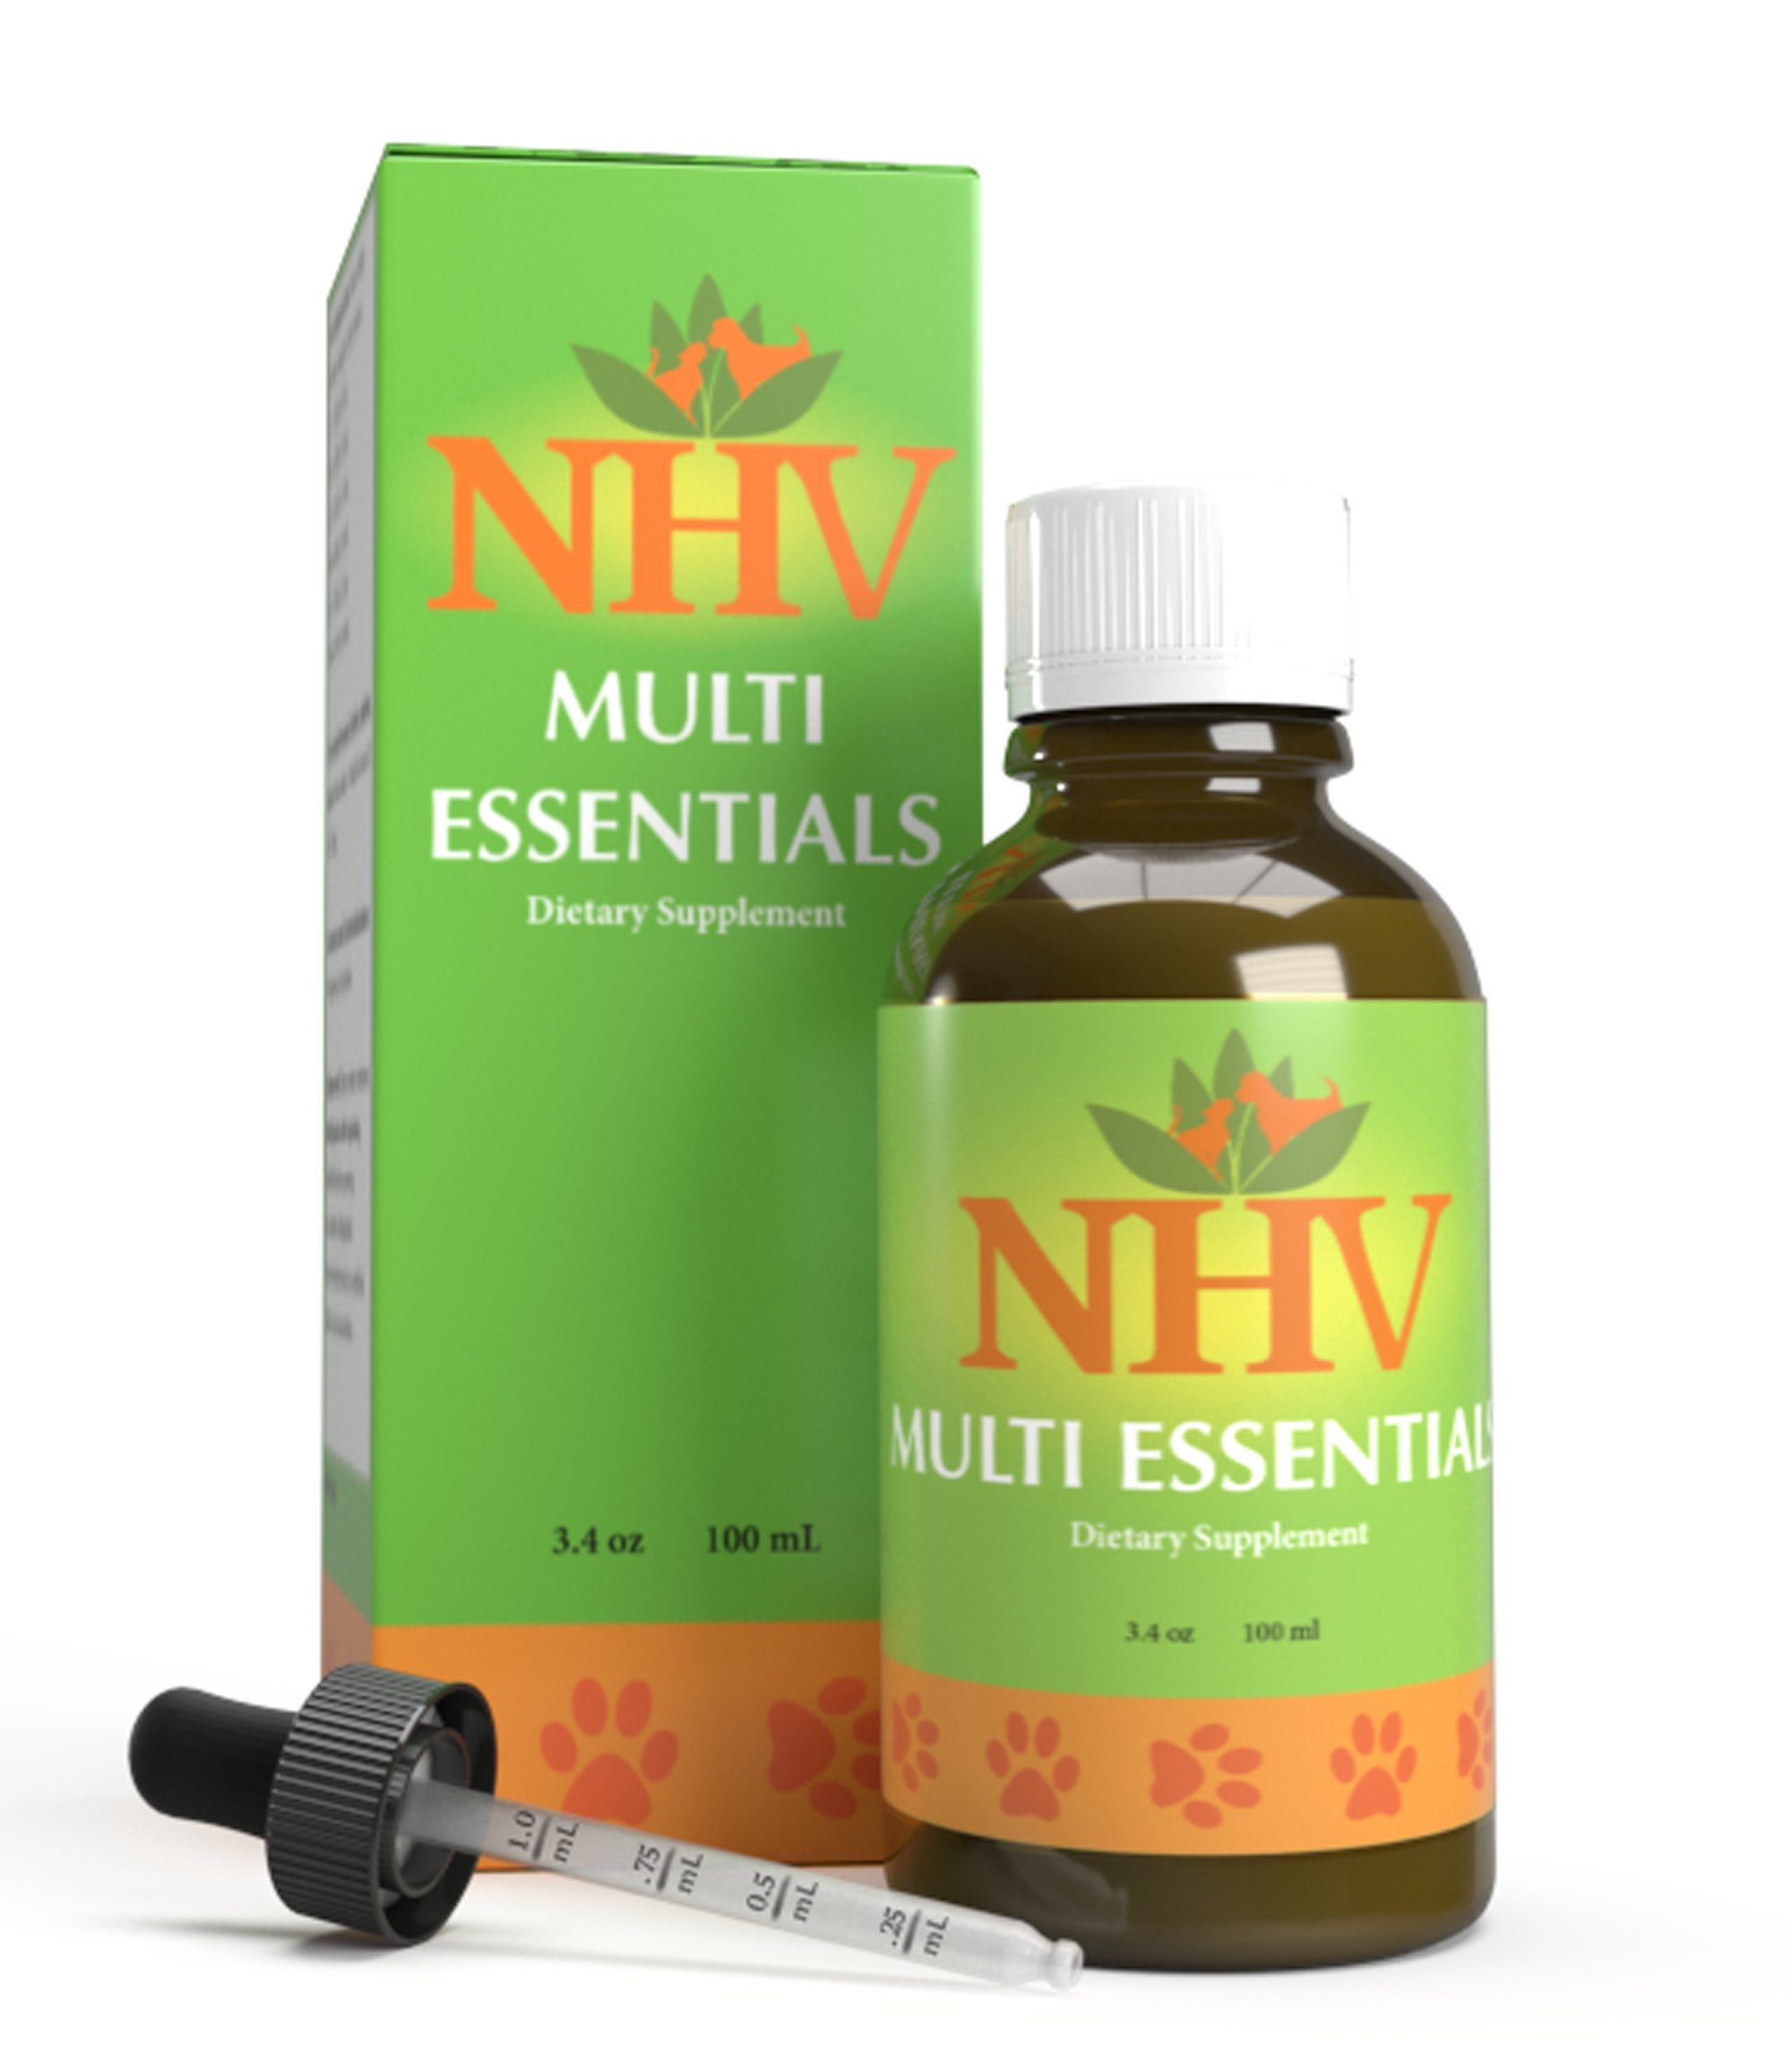 NHV Pet Multivitamin For Dogs & Cats | Natural Energy Booster Multivitamin Multi Essentials by NHV